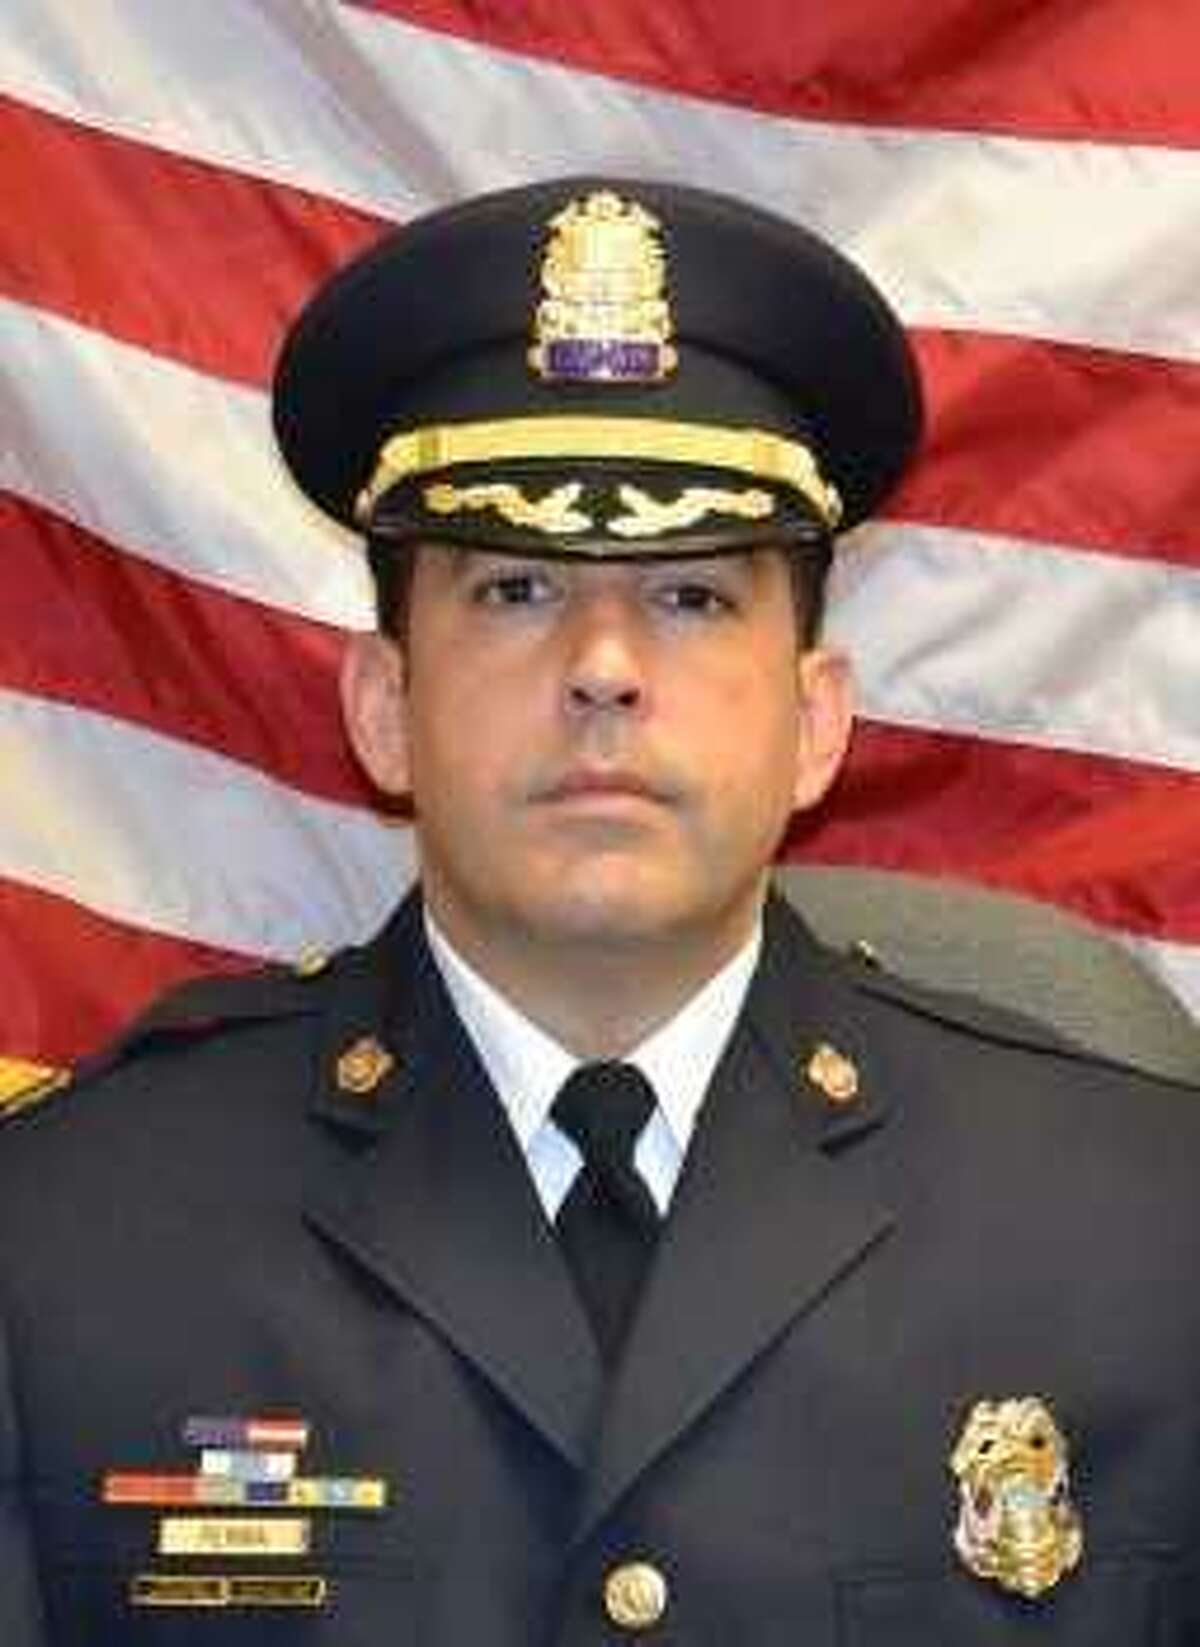 Westport Police Department's Deputy Chief Vincent Penna died Friday at the age of 51.